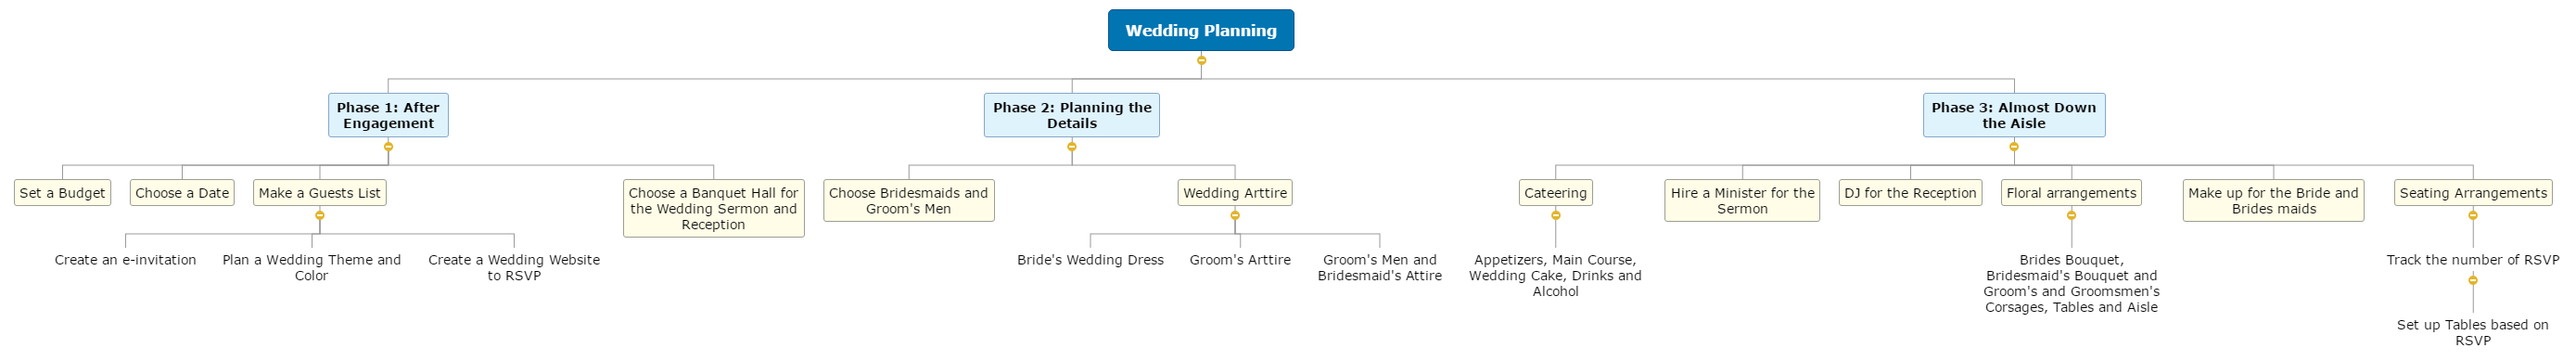 Wedding Planning Mind Map